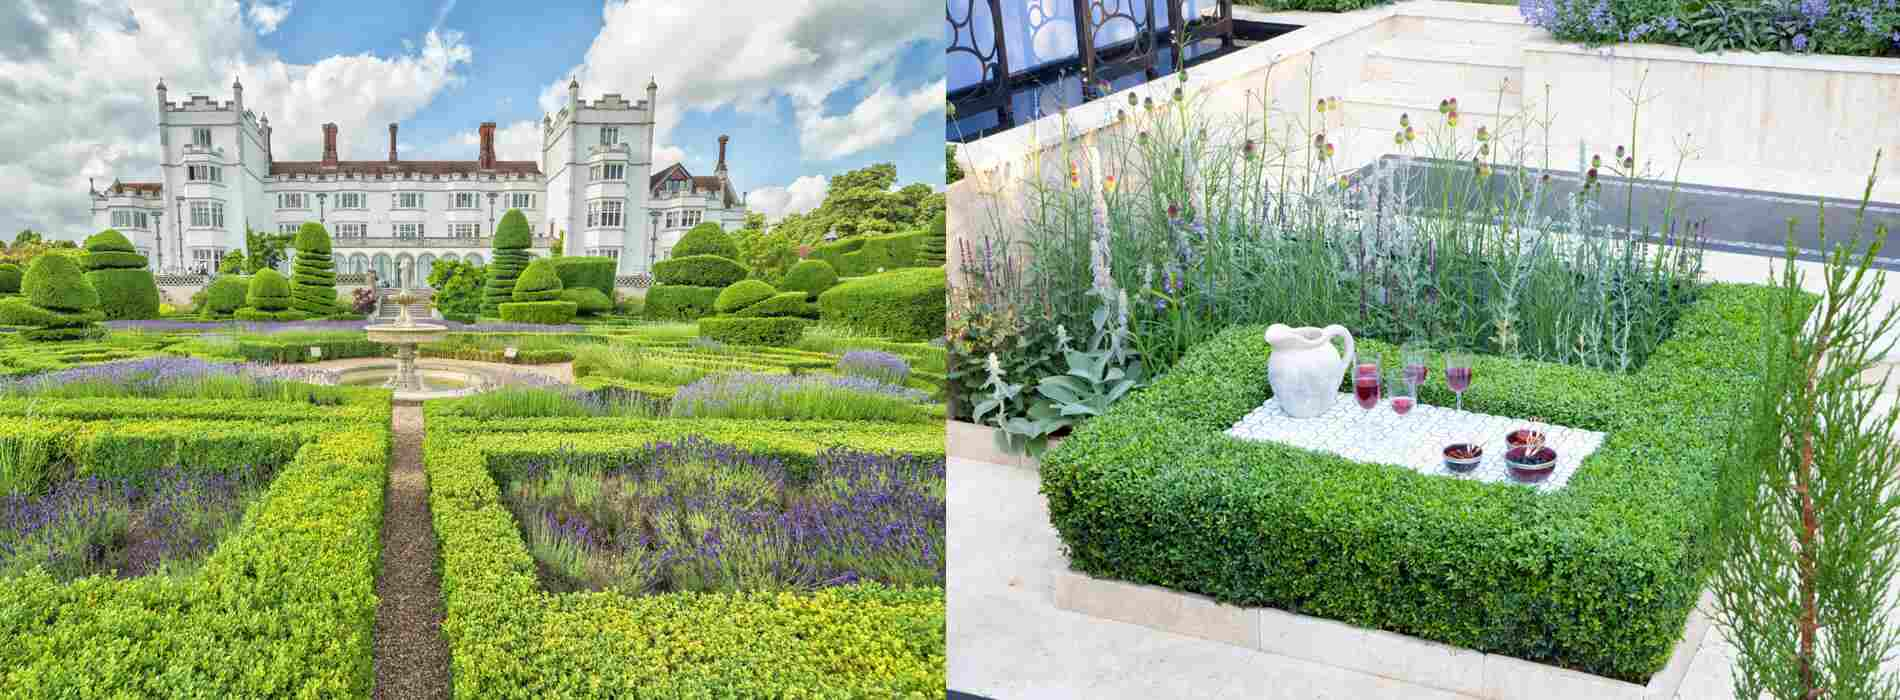 (Buxus) Boxwood hedges are equally at home in a grand estate garden and in a clean, modern setting.